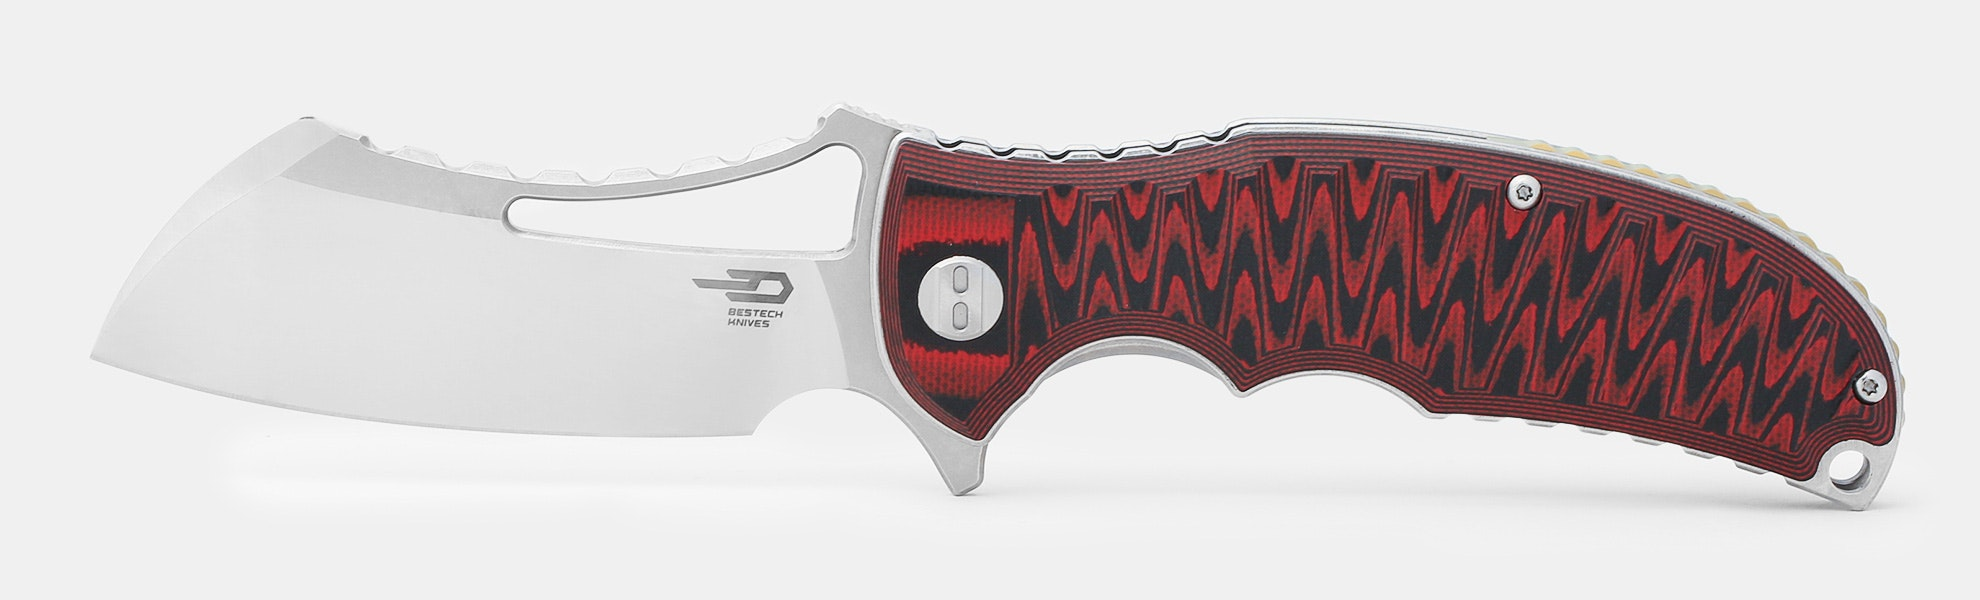 Bestech Hornet Folding Knife